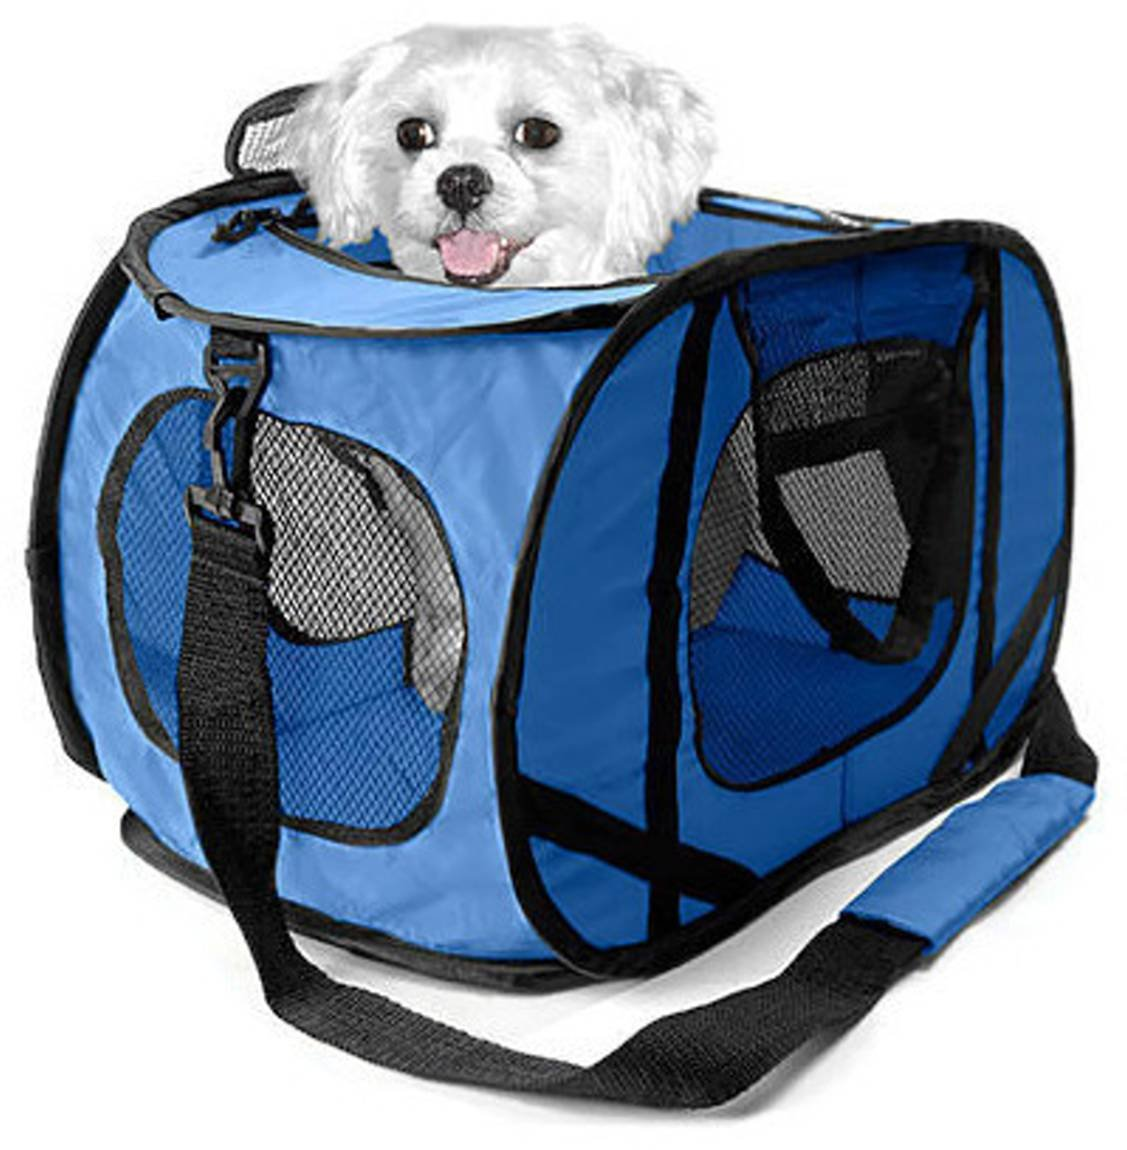 Sport Pet Pop Open Pet Carrier for up to 20 Pound Pet- Blue Sportpet Designs